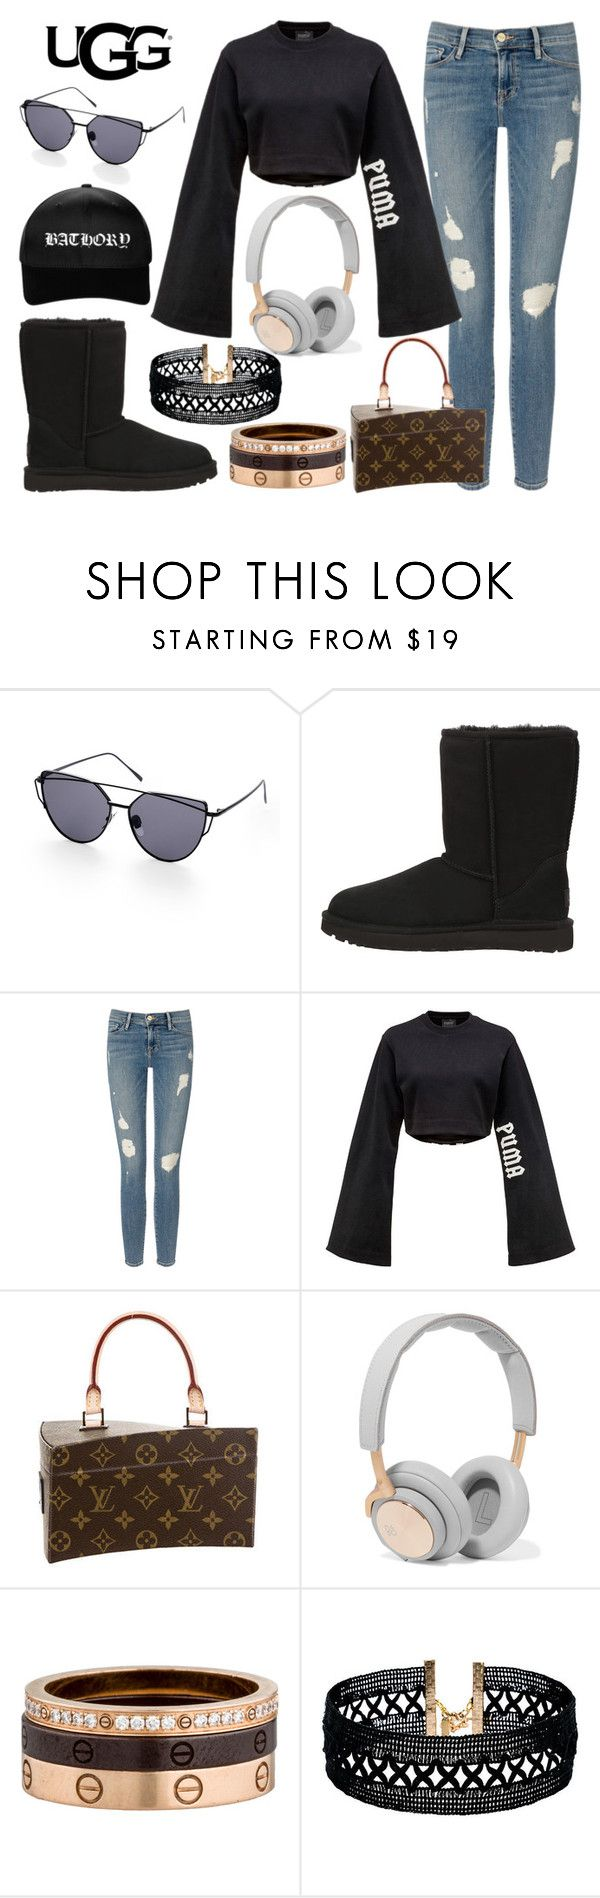 """The Icon Perfected: UGG Classic II Contest Entry"" by mary-zacharia ❤ liked on Polyvore featuring UGG Australia, Frame Denim, Puma, Louis Vuitton, B&O Play, Cartier, Vanessa Mooney, ugg and contestentry"